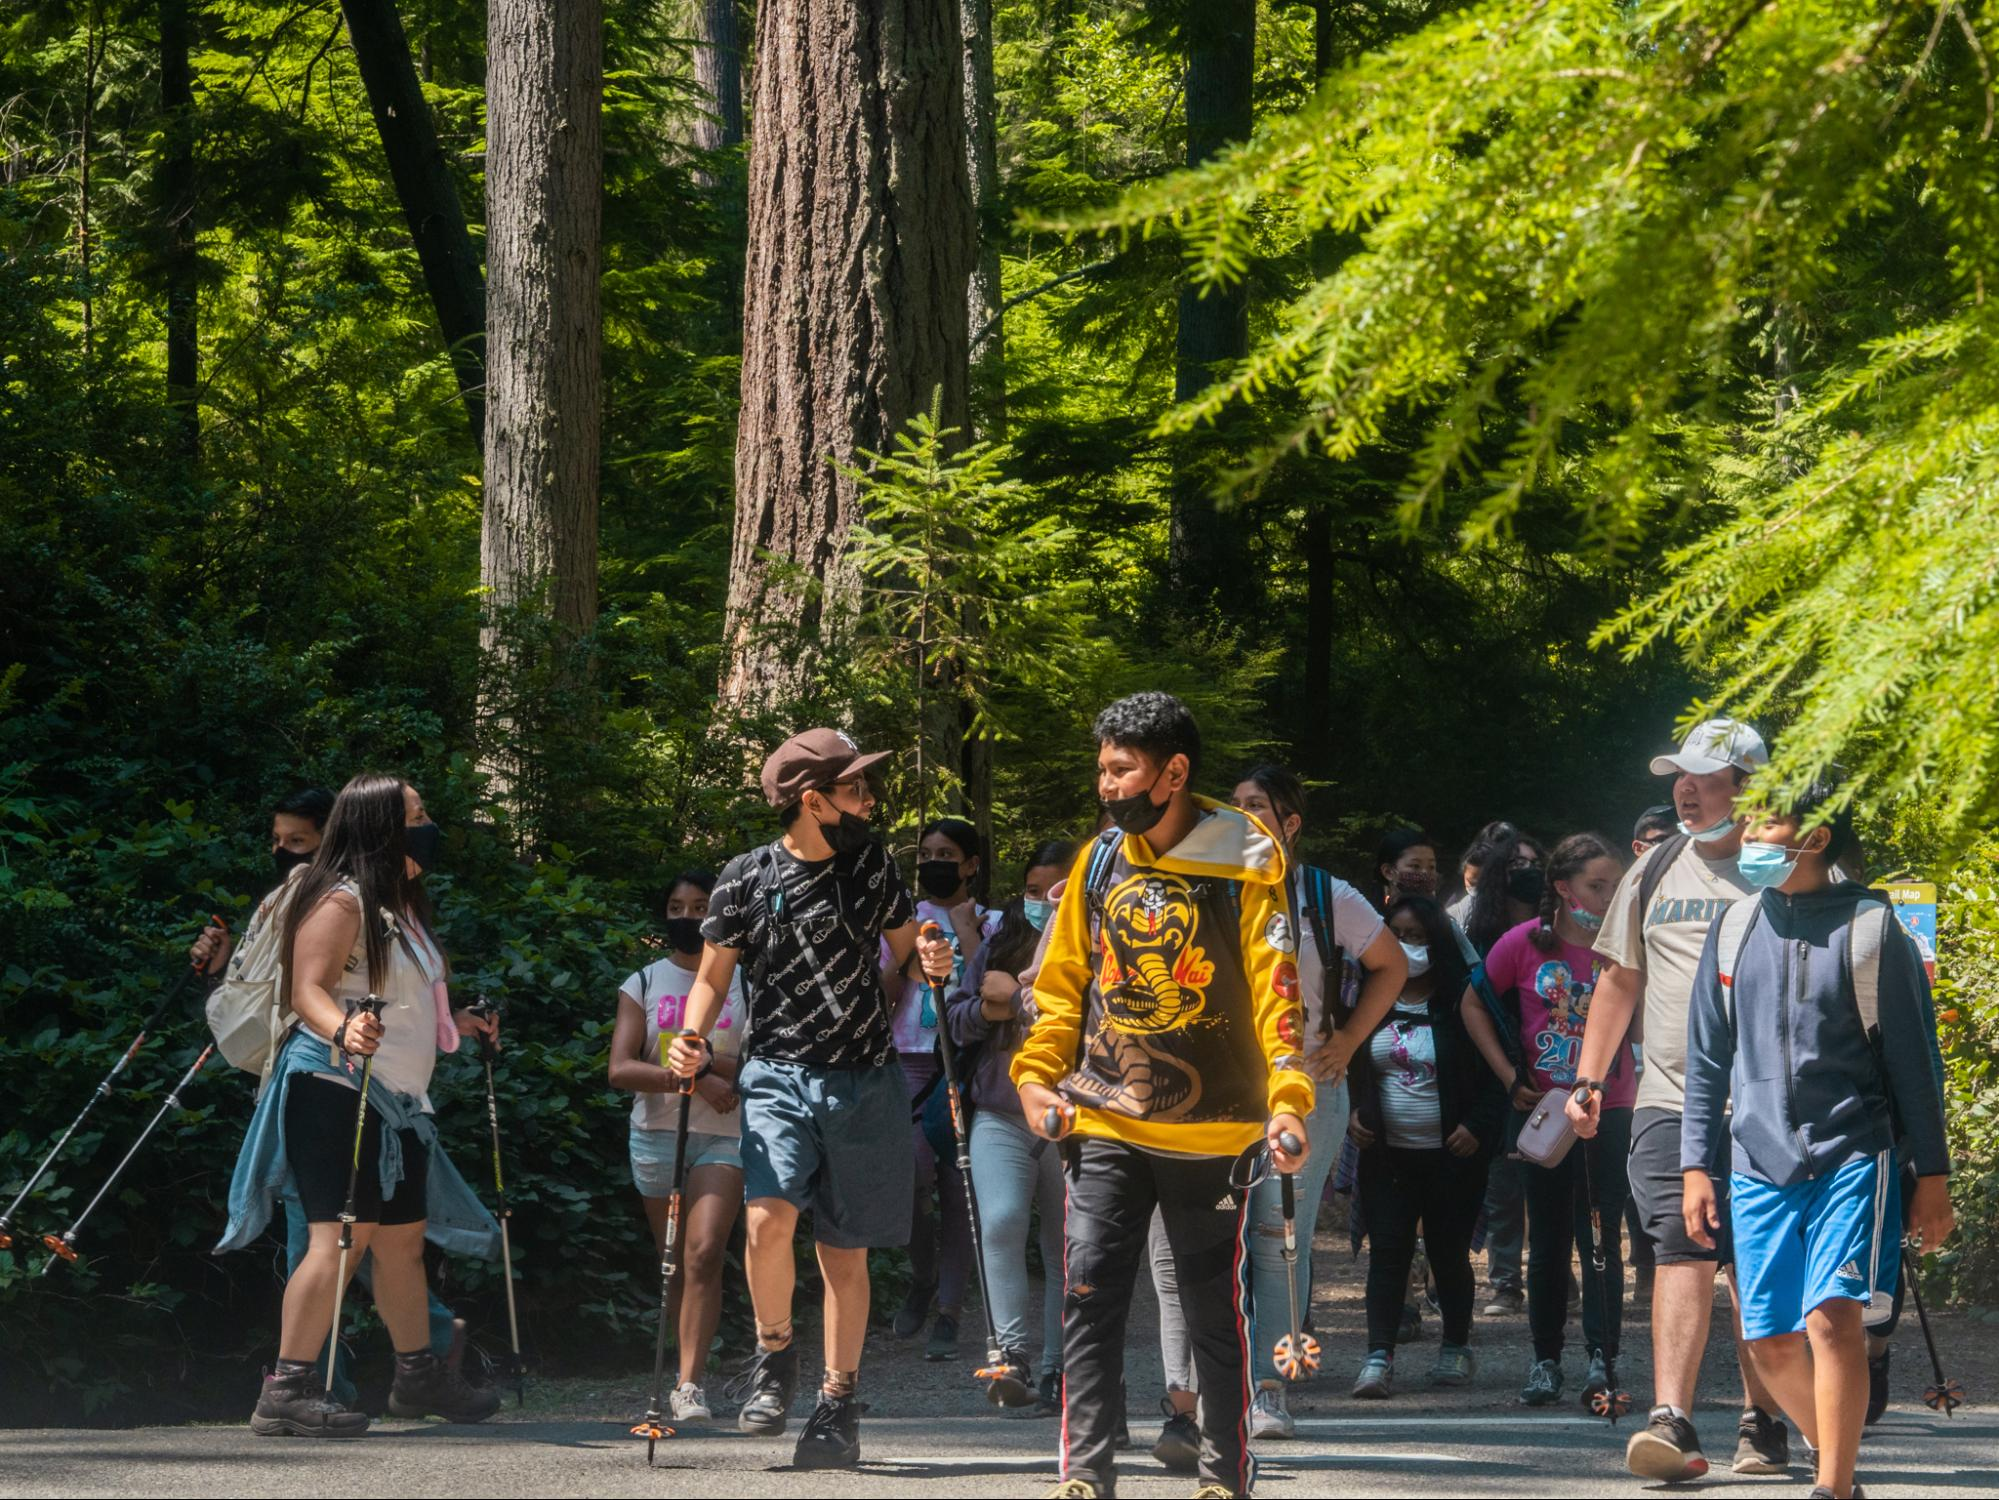 A group of hikers explores a trail with evergreen trees at the edge.